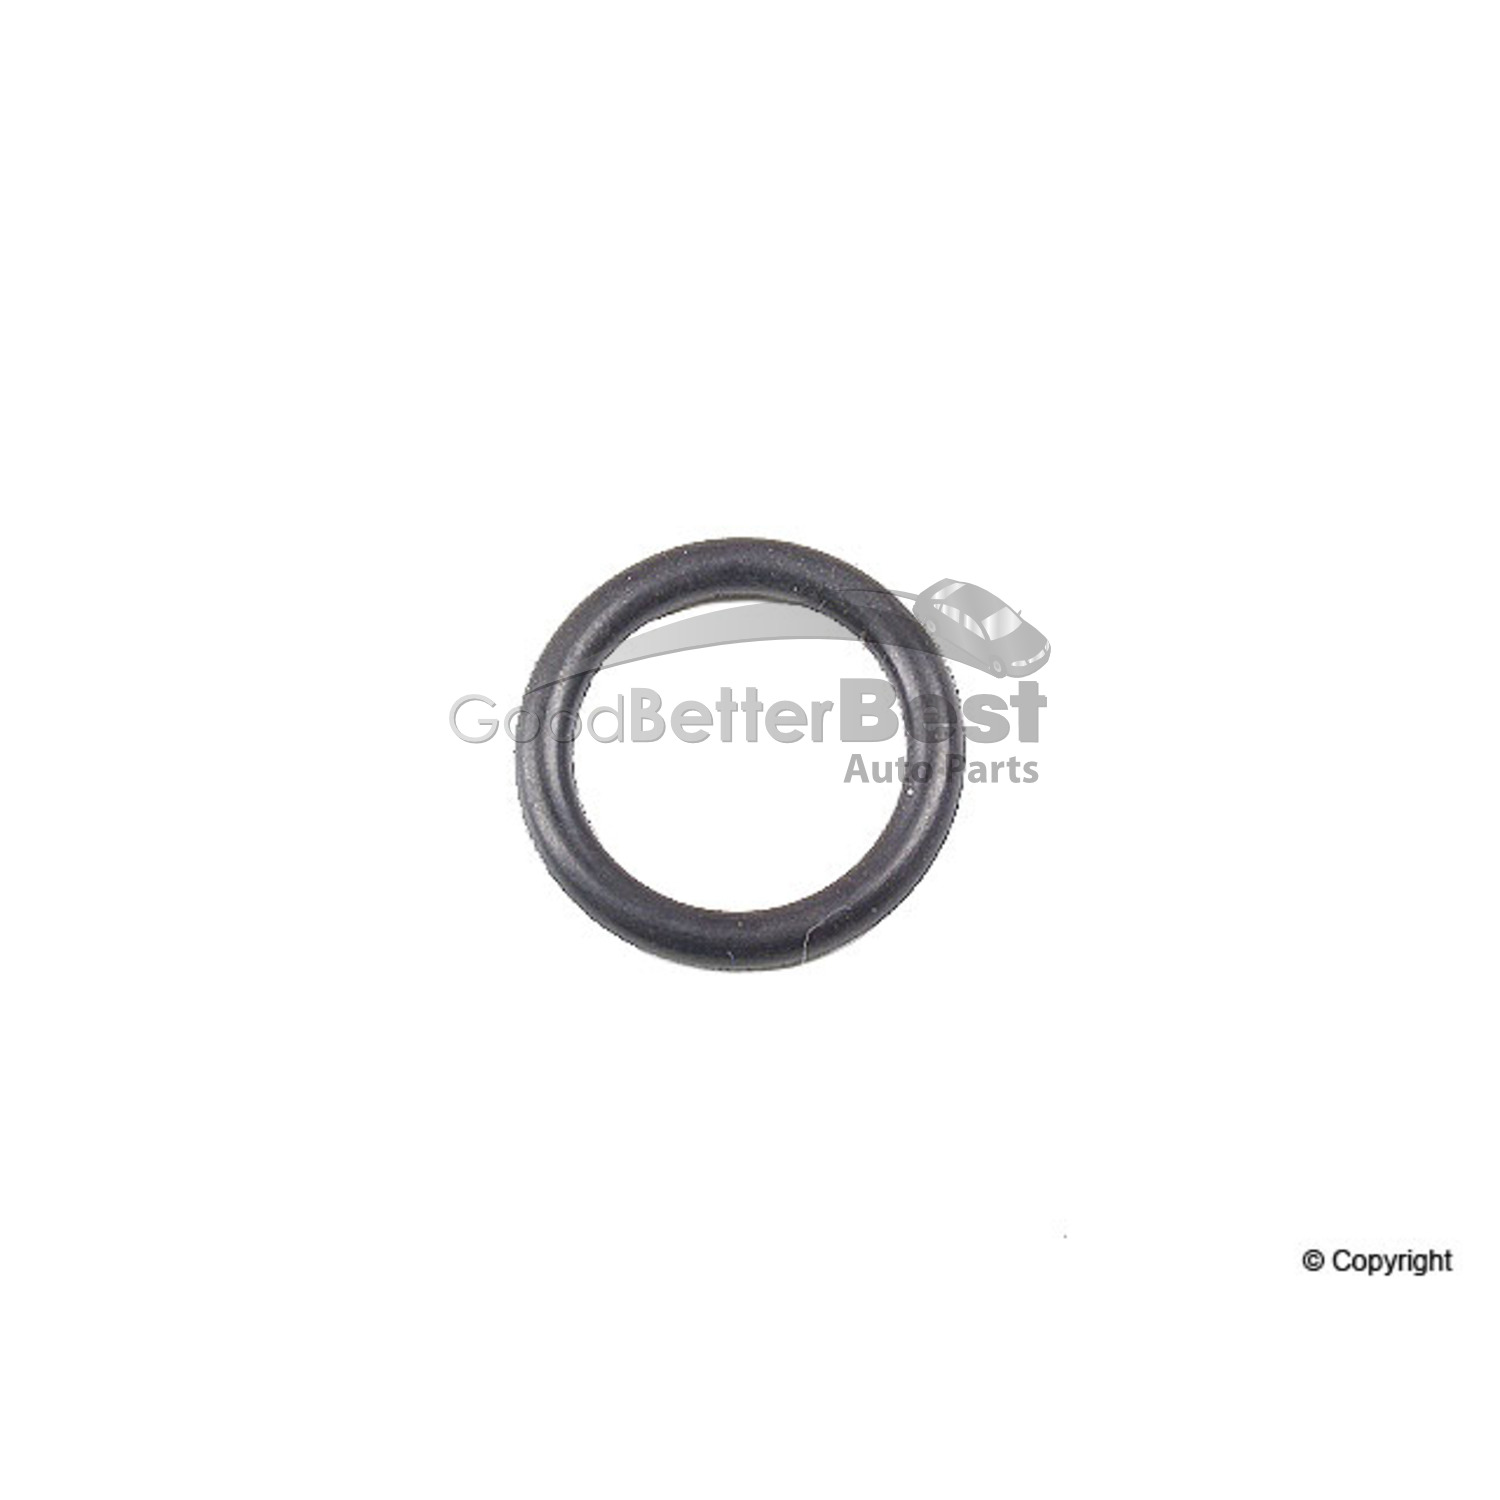 One New Genuine Fuel Filter O-Ring 0099979248 for Mercedes